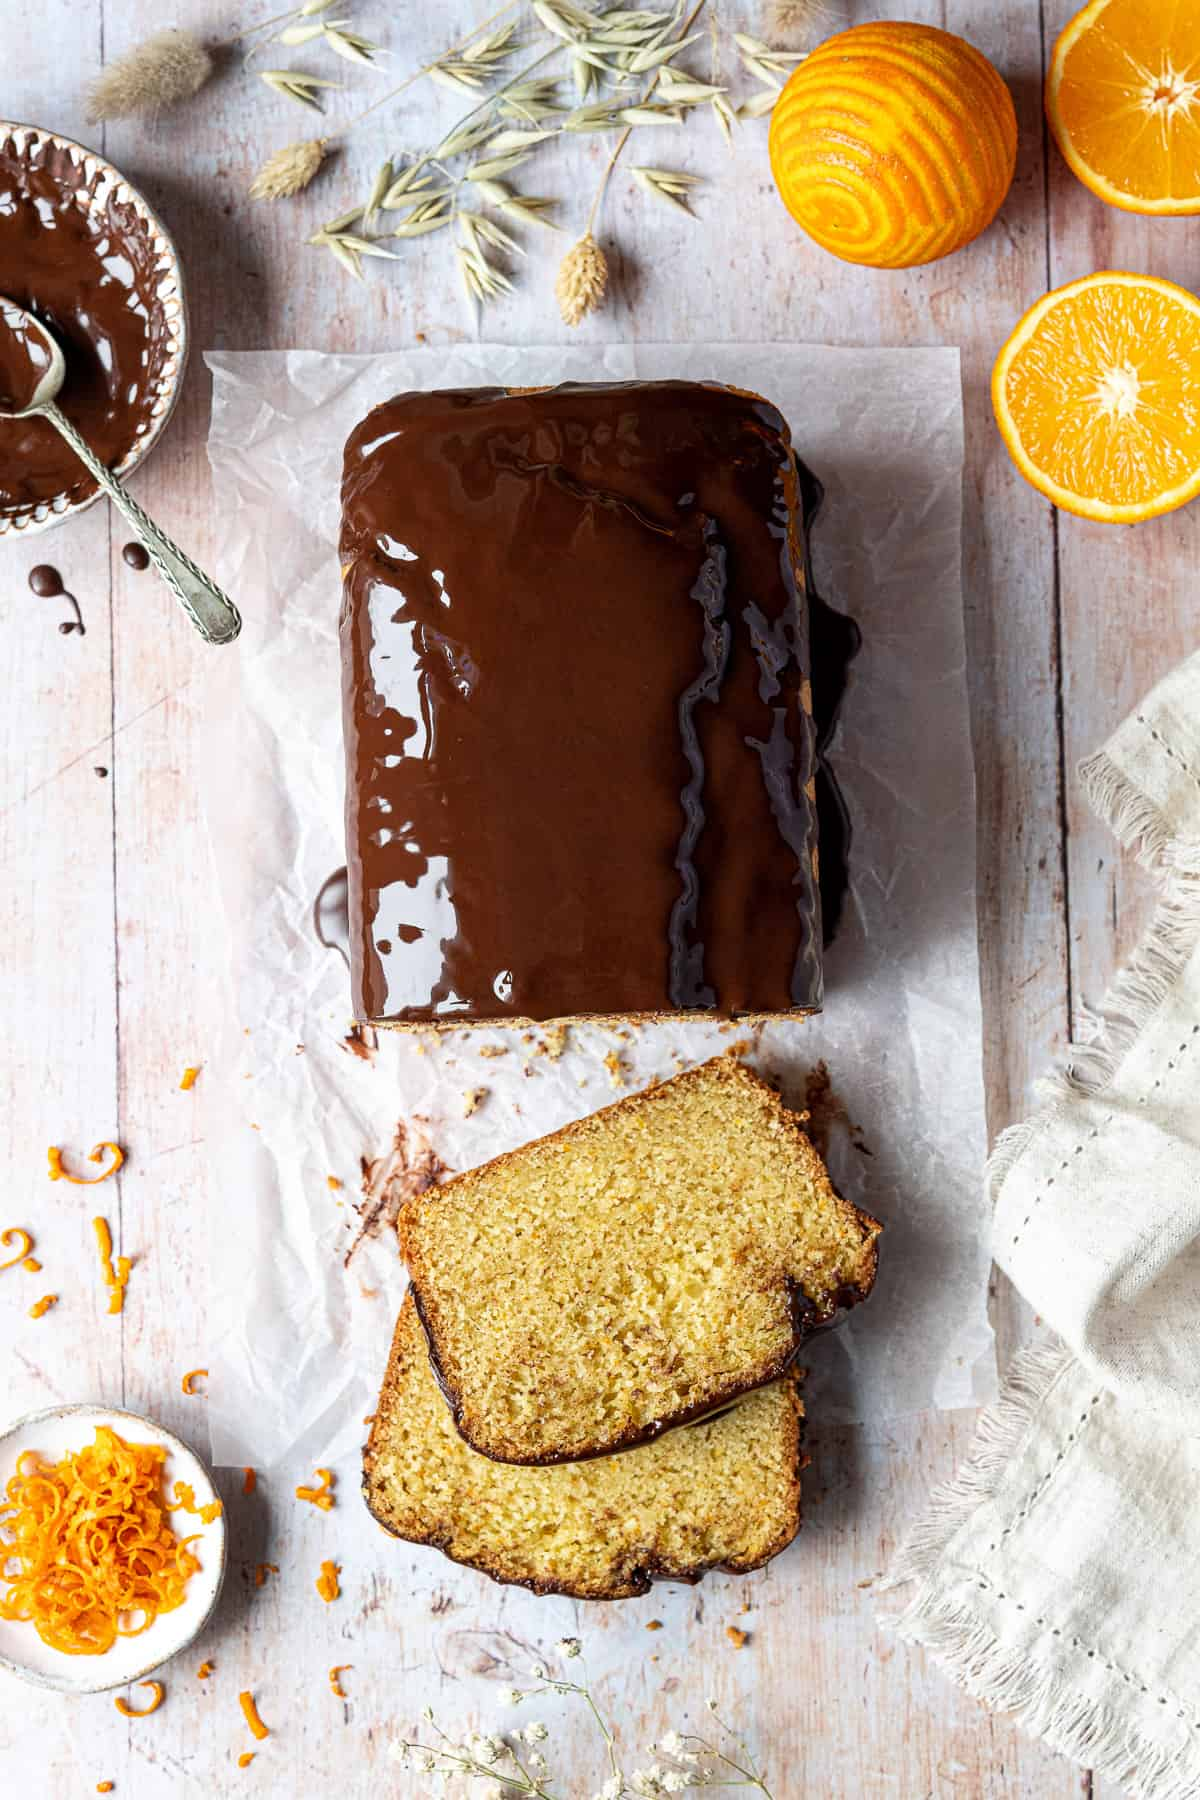 Vegan orange loaf cake on a wooden table with oranges, a bowl of chocolate glaze, a bowl of orange zest and a linen cloth.